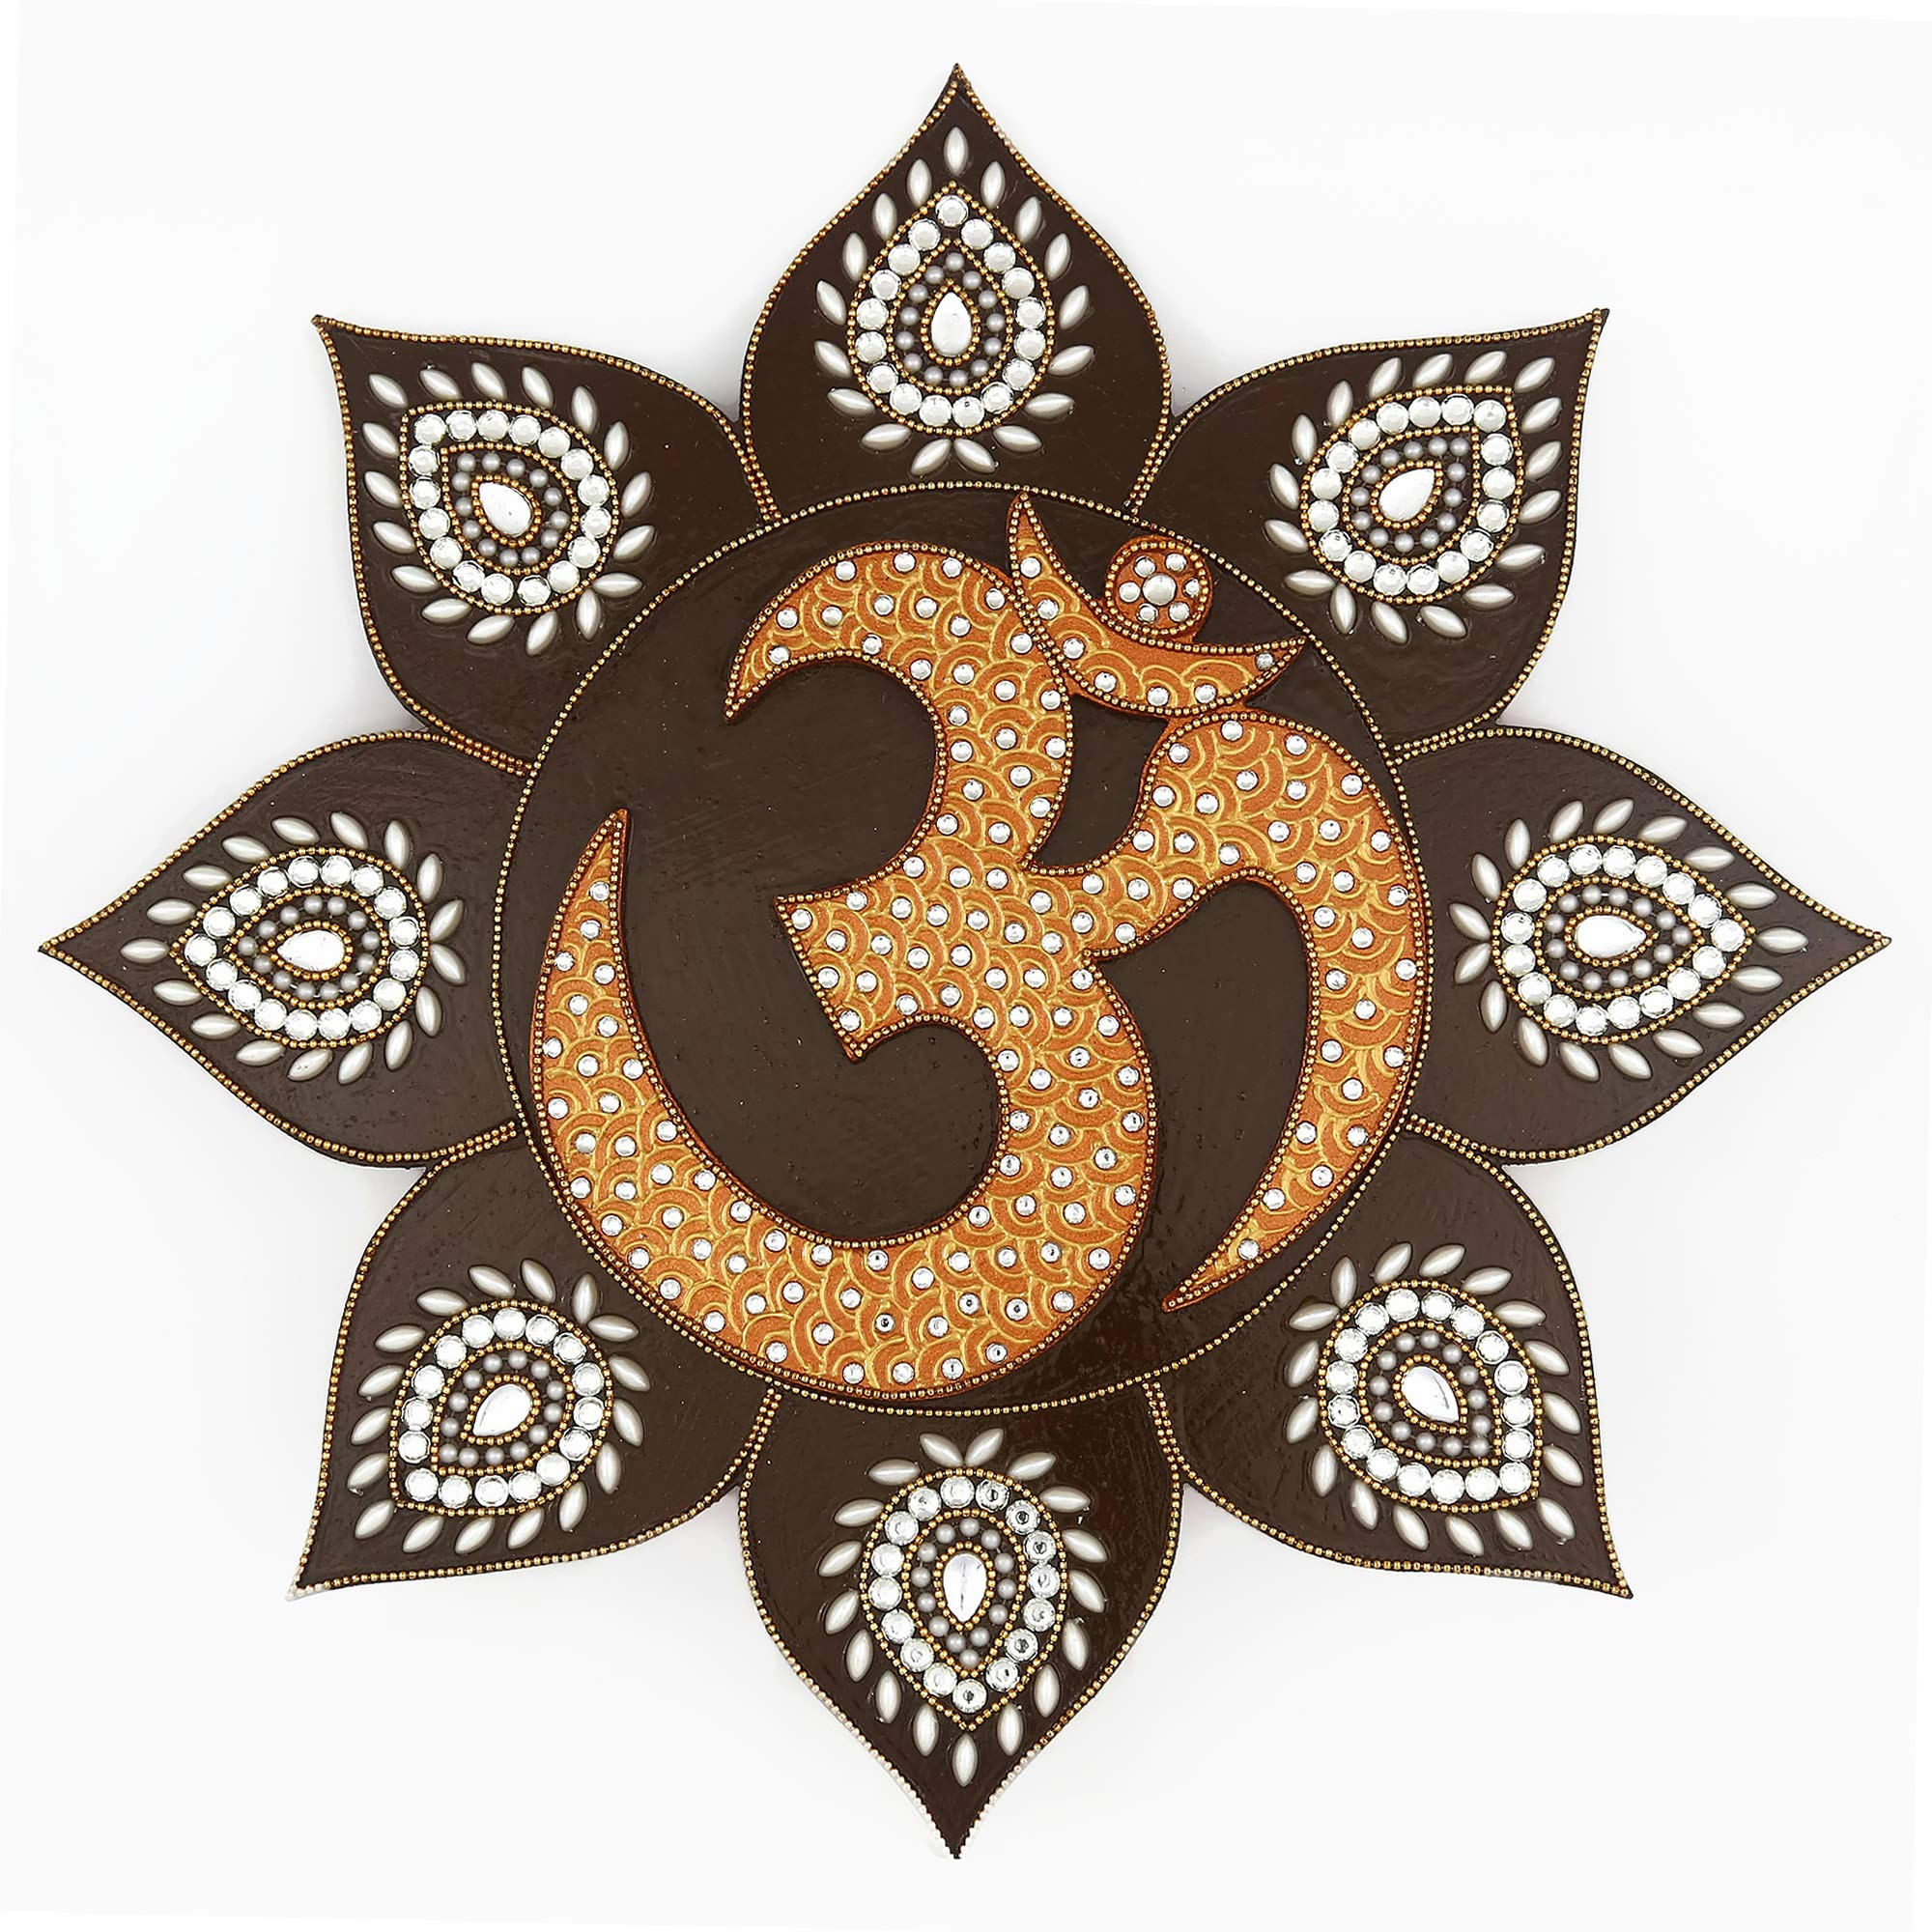 Om Symbol - Om Sign - Wall Painting - Wall Decor for Living Room - Handmade Hand Painted Hand Decorated - Hindu Art - Inspired by Temples In India - Copper Brown Colour